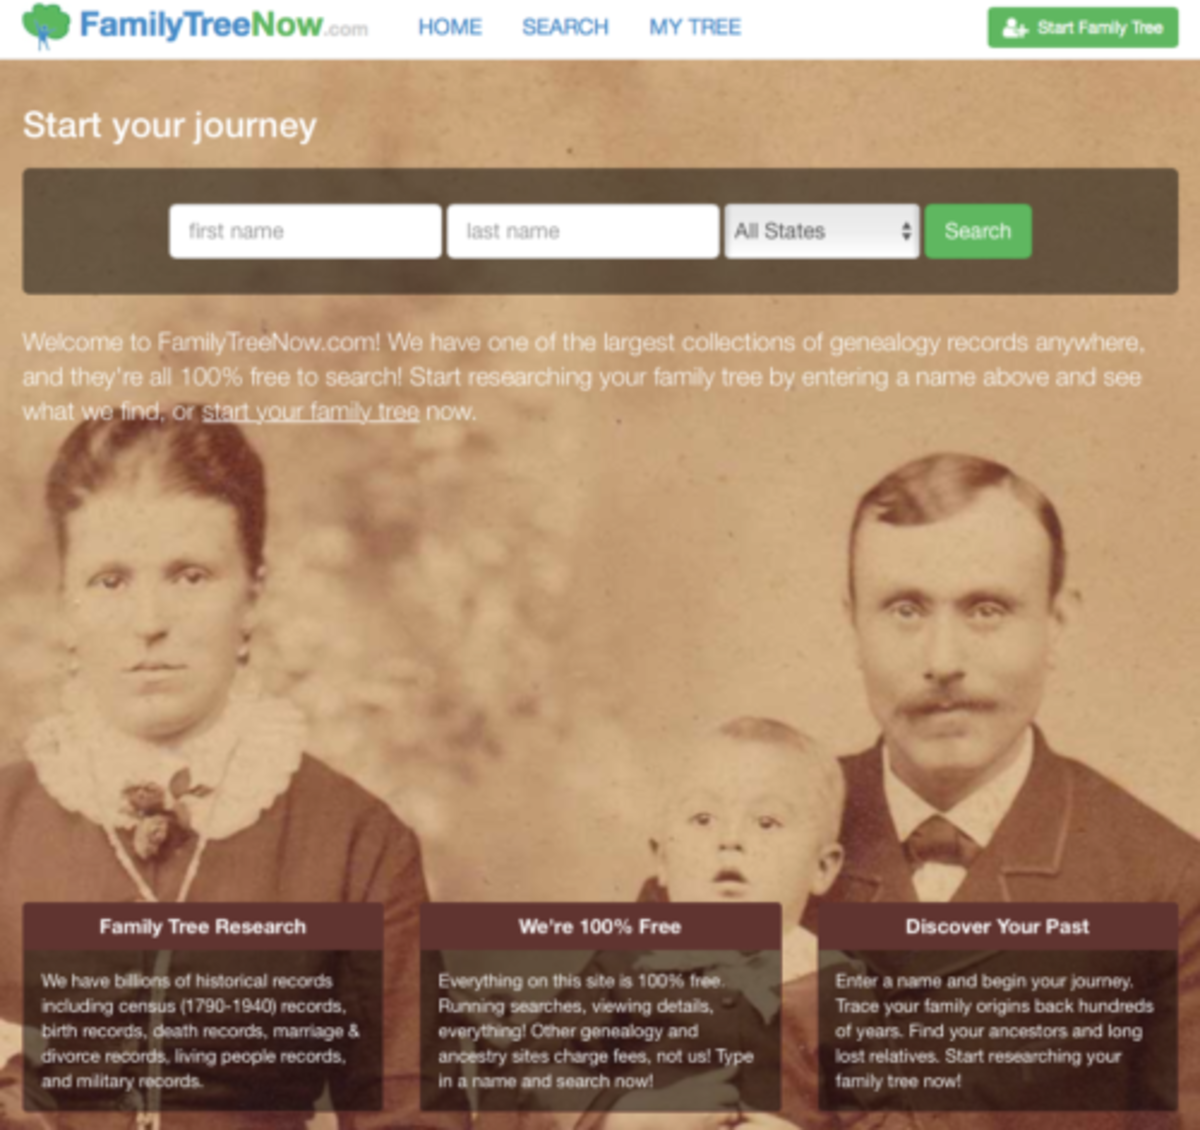 Opt Out of Family Tree Now to Protect Your Privacy